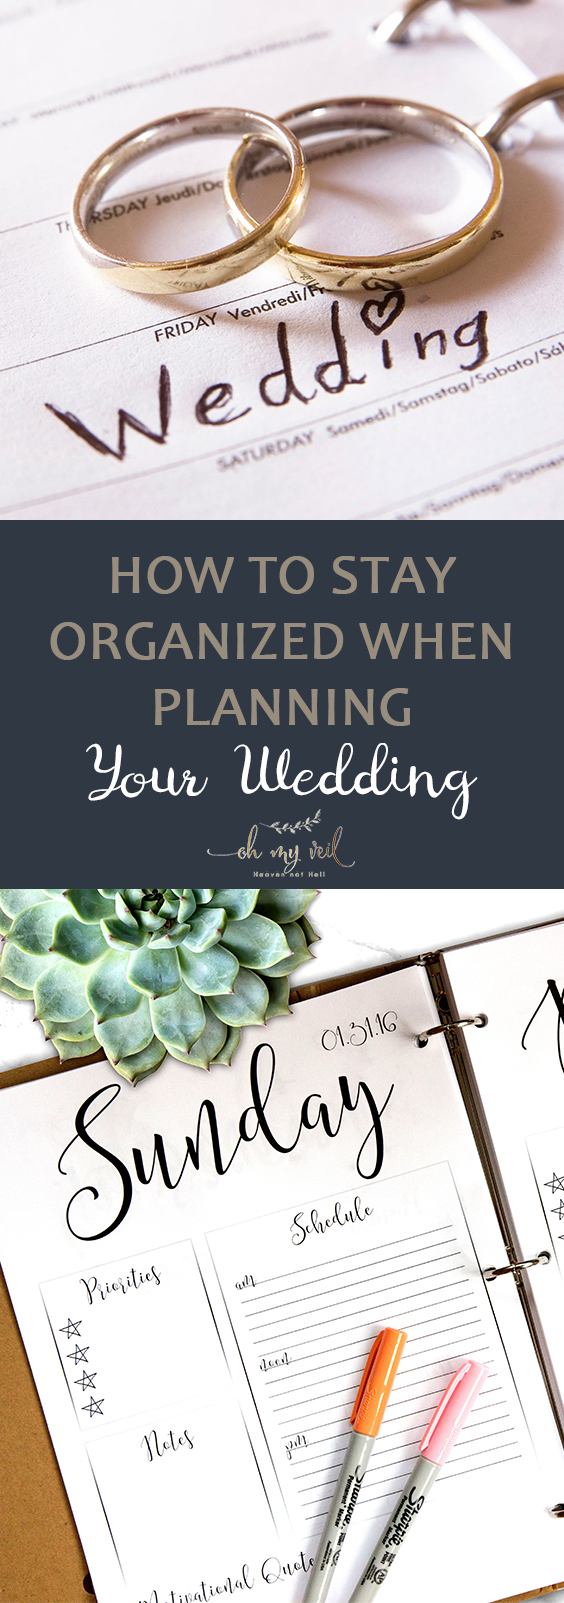 Stay Organized, Wedding Planning, Wedding Planning Tips, Wedding Planning Hacks, How to Plan Your Wedding, Stress Free Wedding Planning, Stress Free Wedding